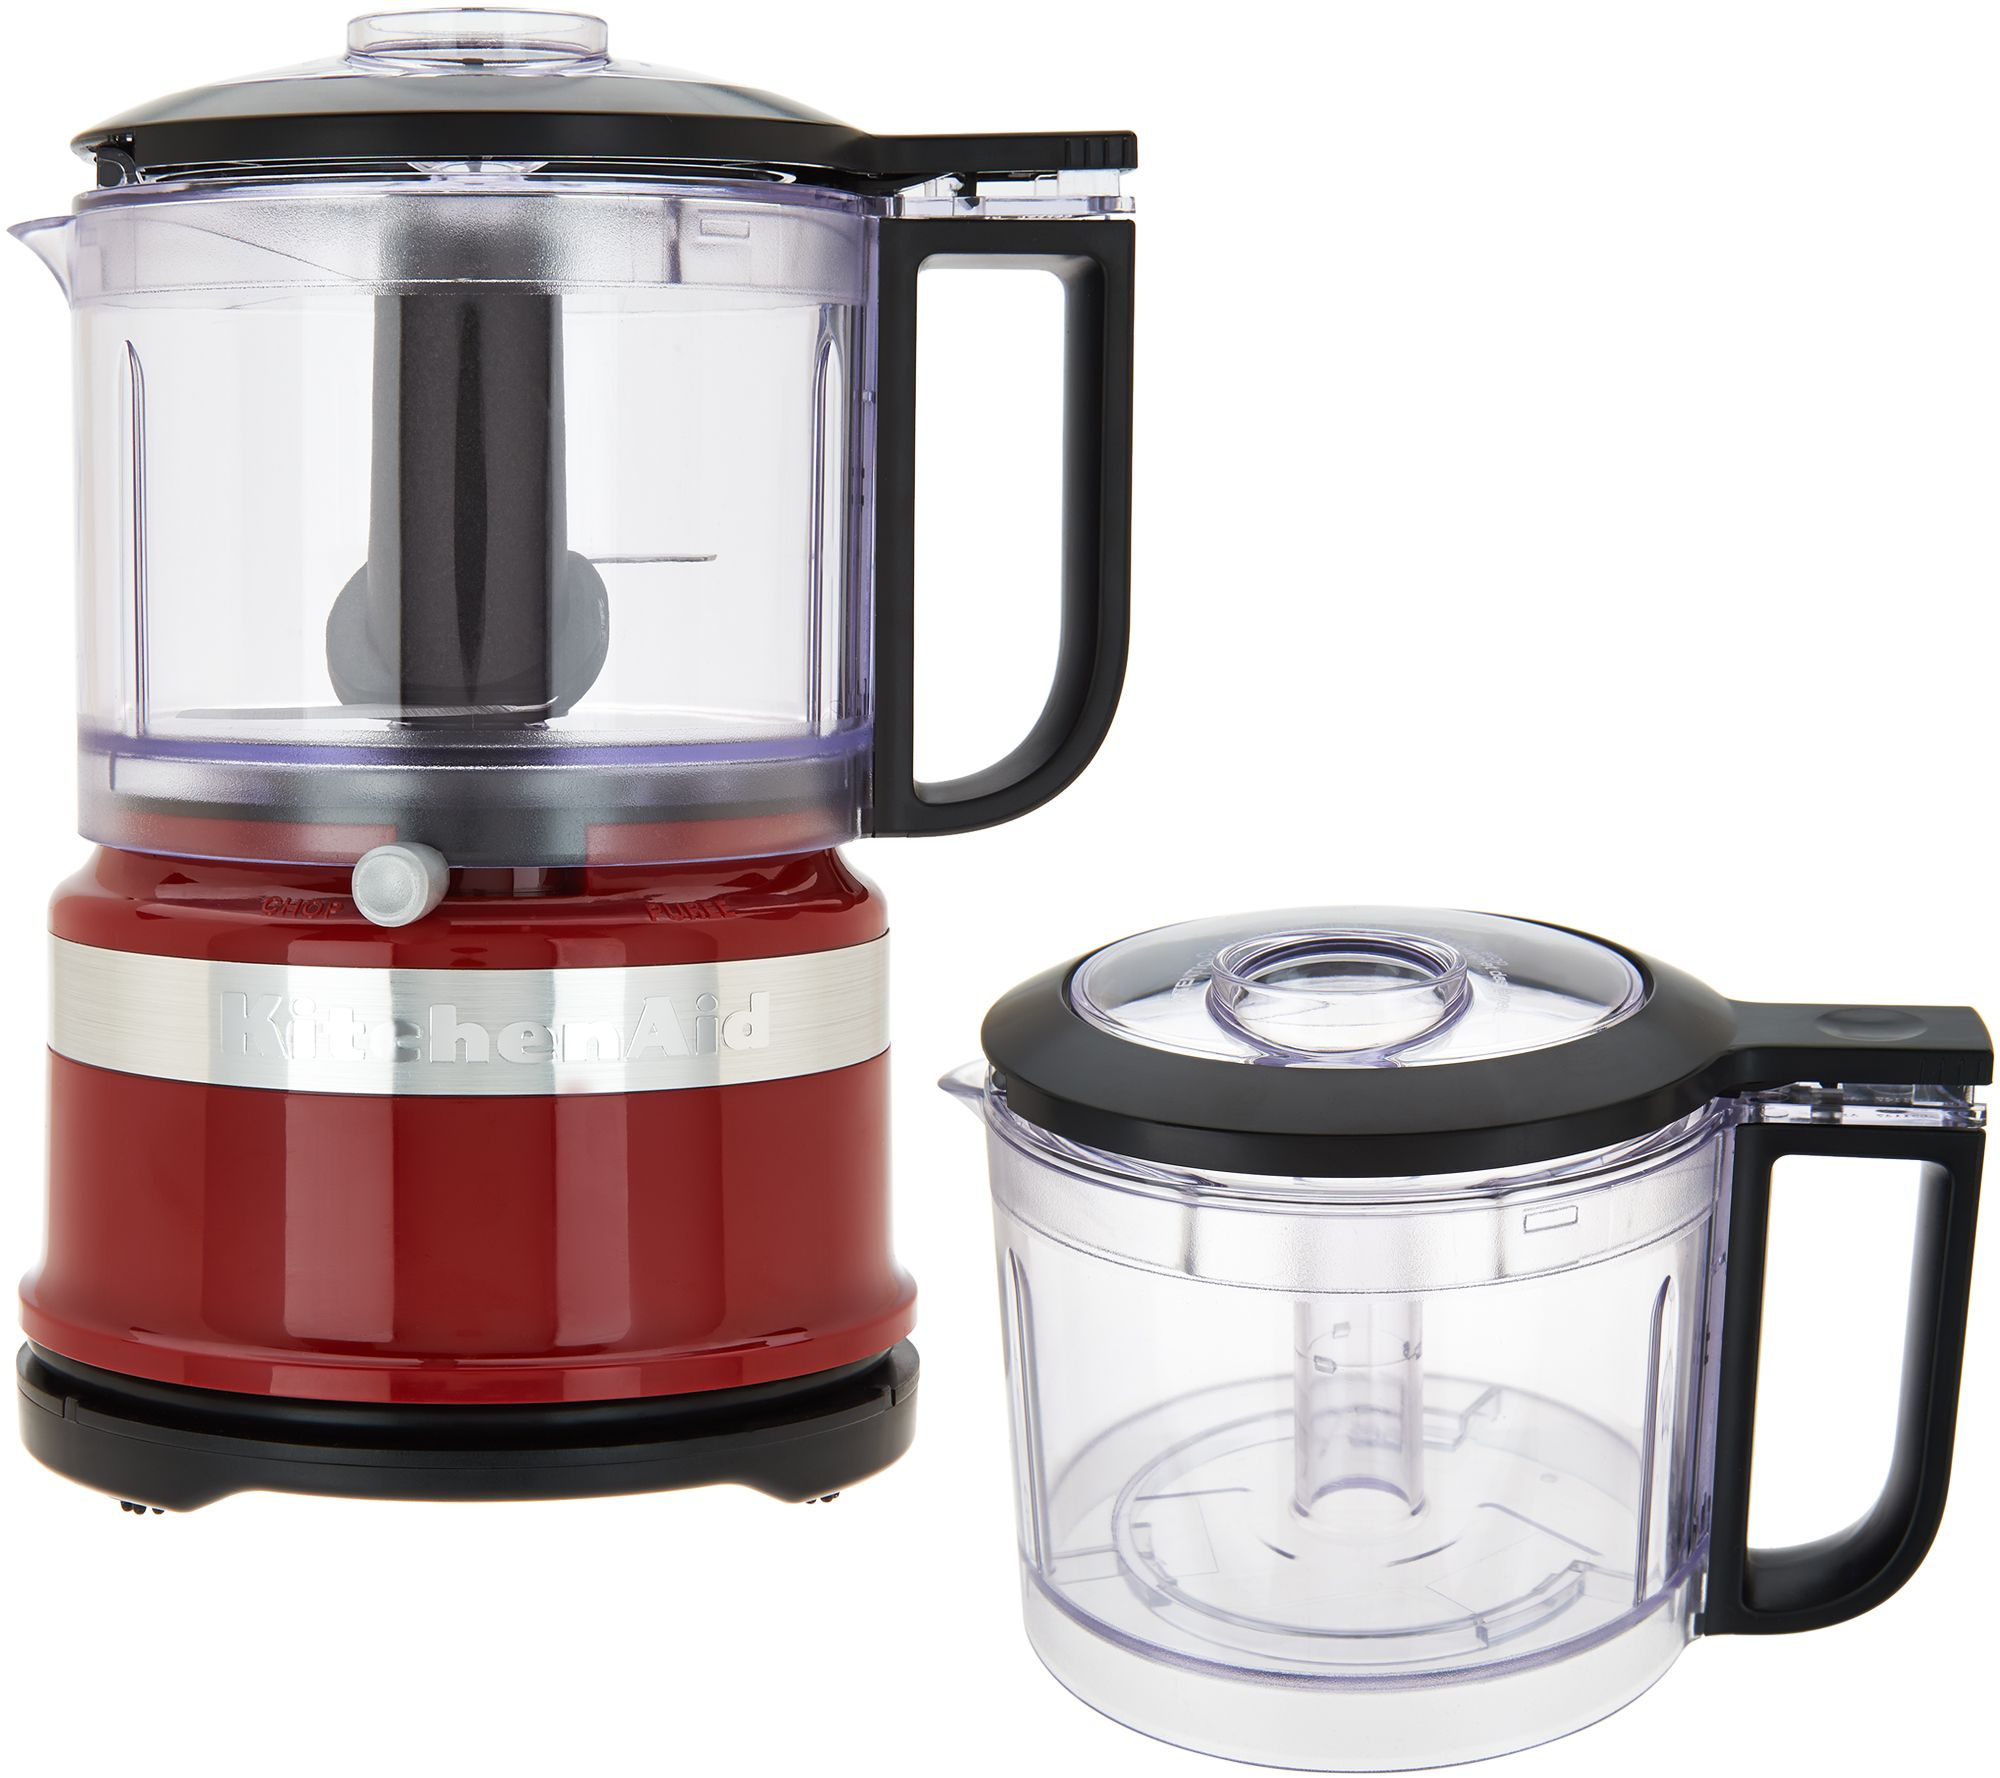 Kitchenaid 3 5 Cup One Touch 2 Speed Chopper With Extra Bowl Qvc Com